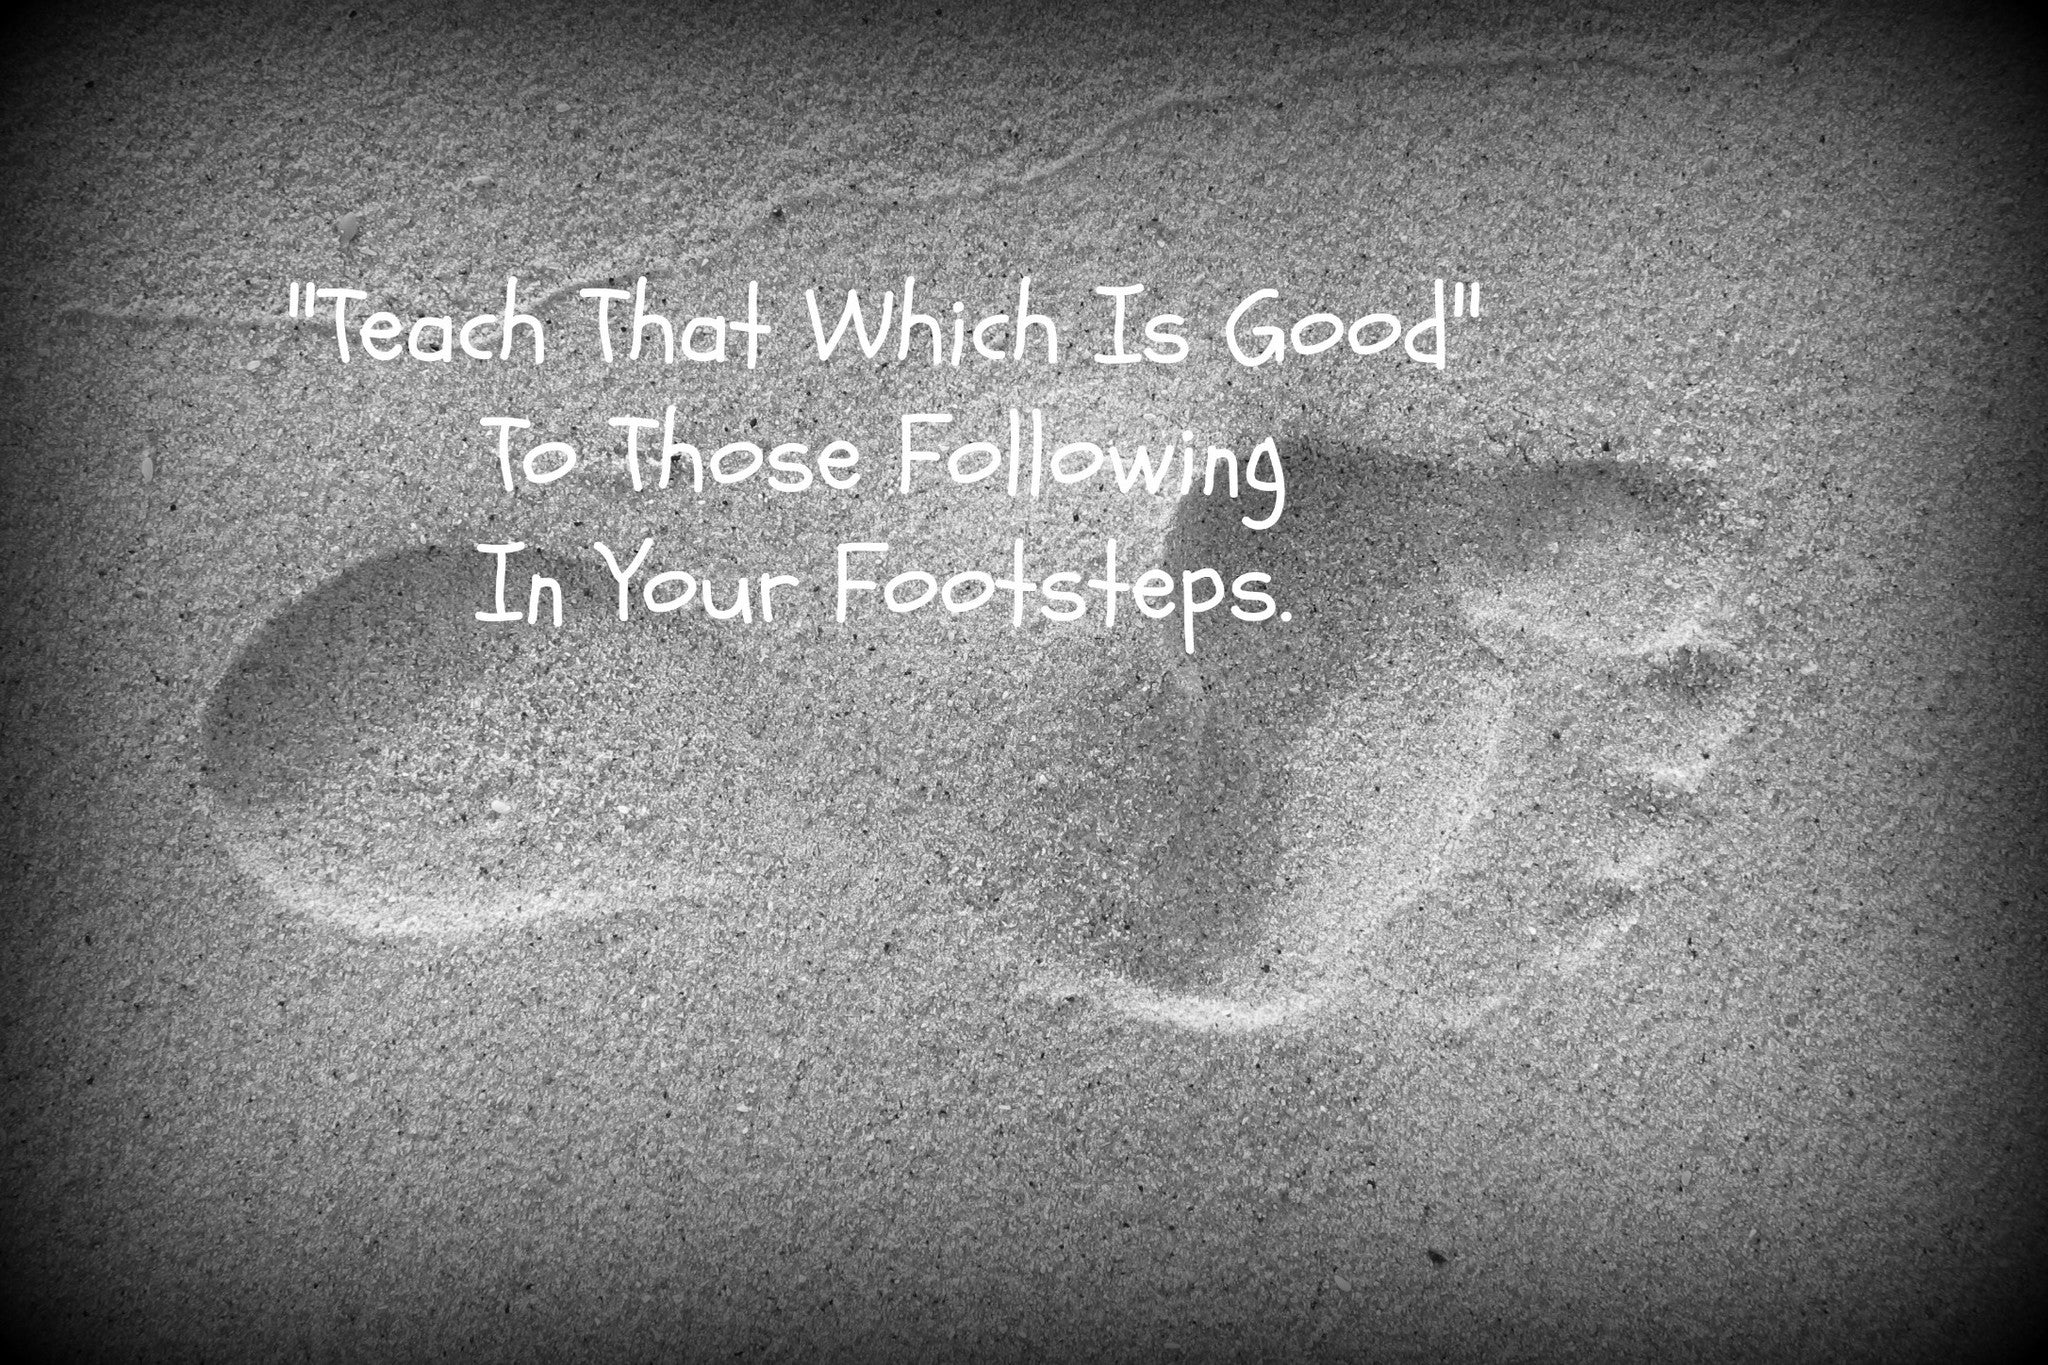 Teach The Way | Footprints | Teach That Which Is Good | Titus 2